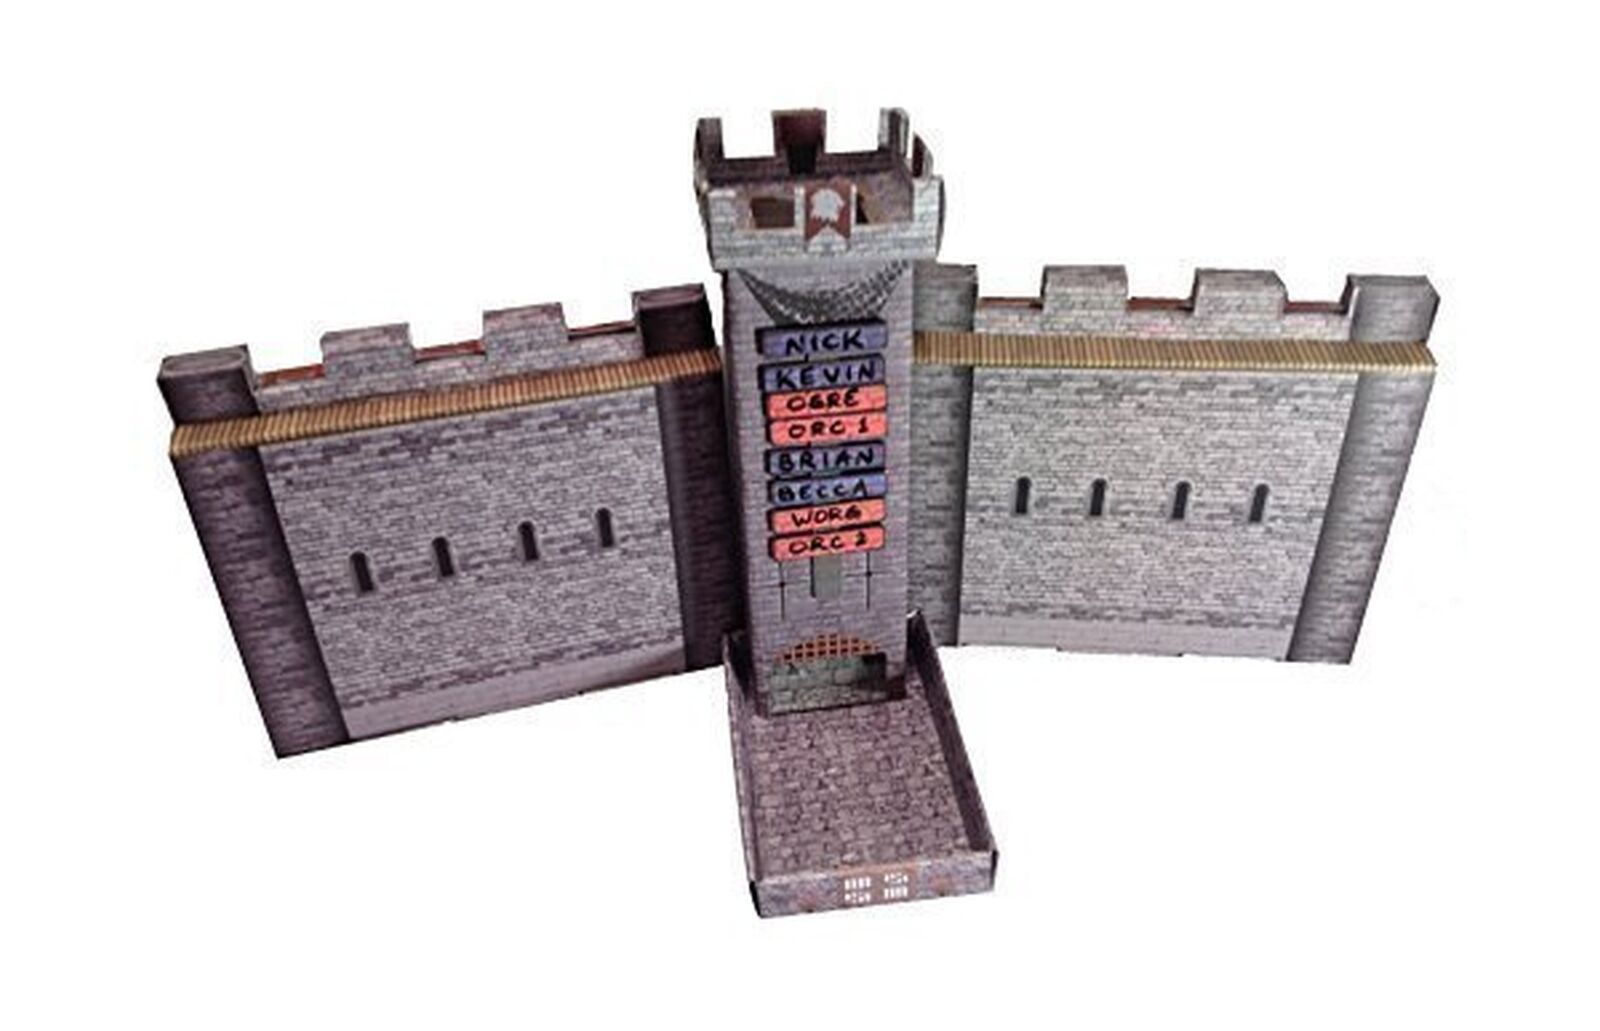 Castle Keep Dice Tower, 2 Castle Wall DM Screens